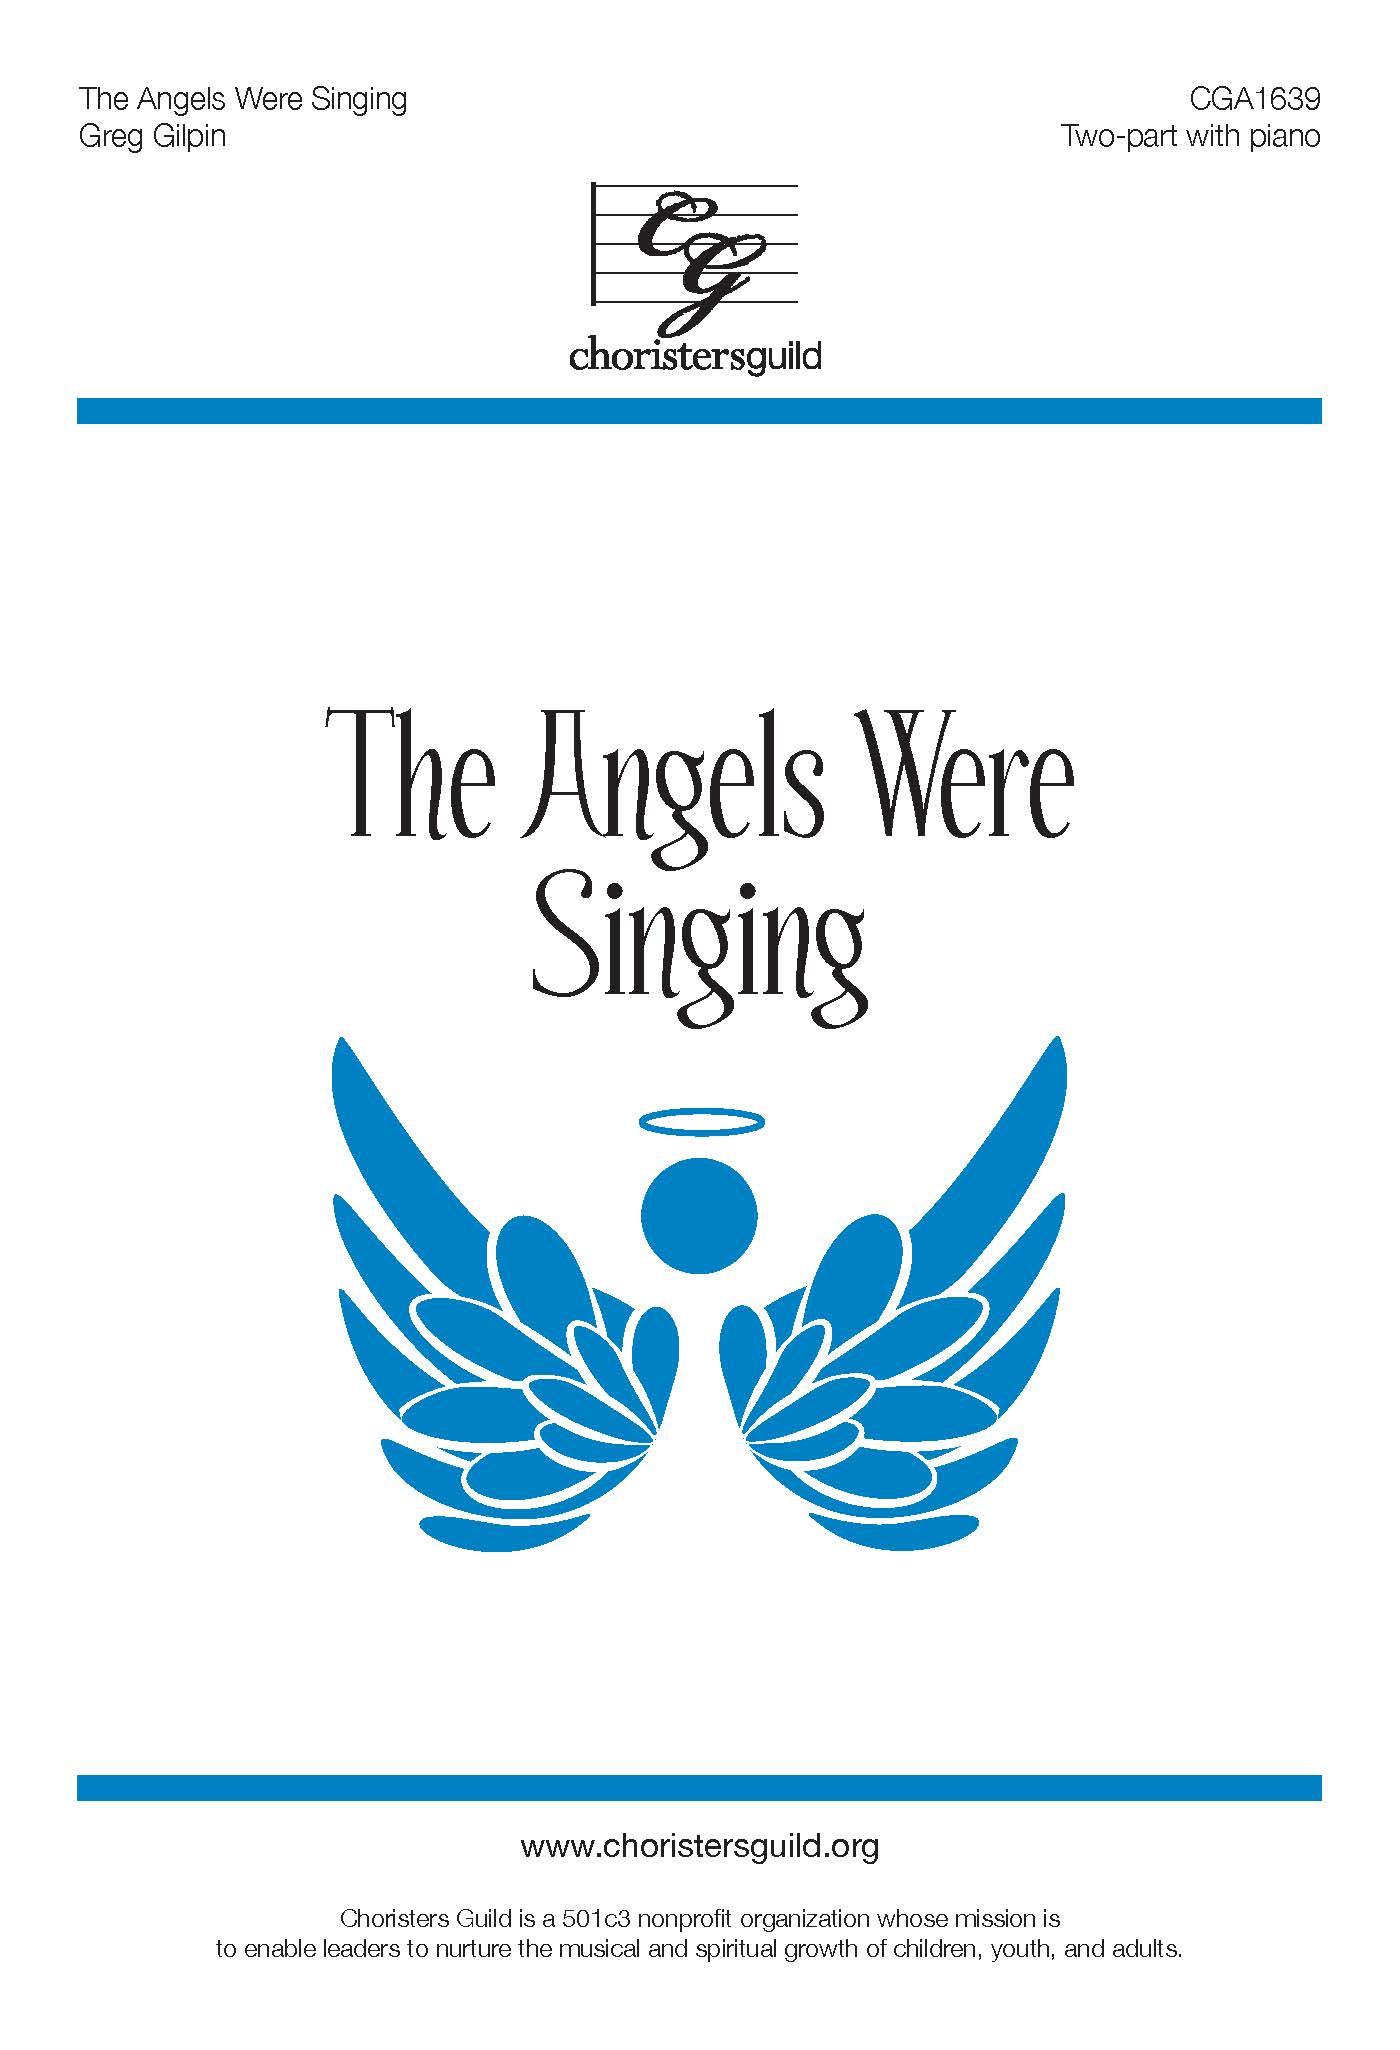 The Angels Were Singing! - Two-part